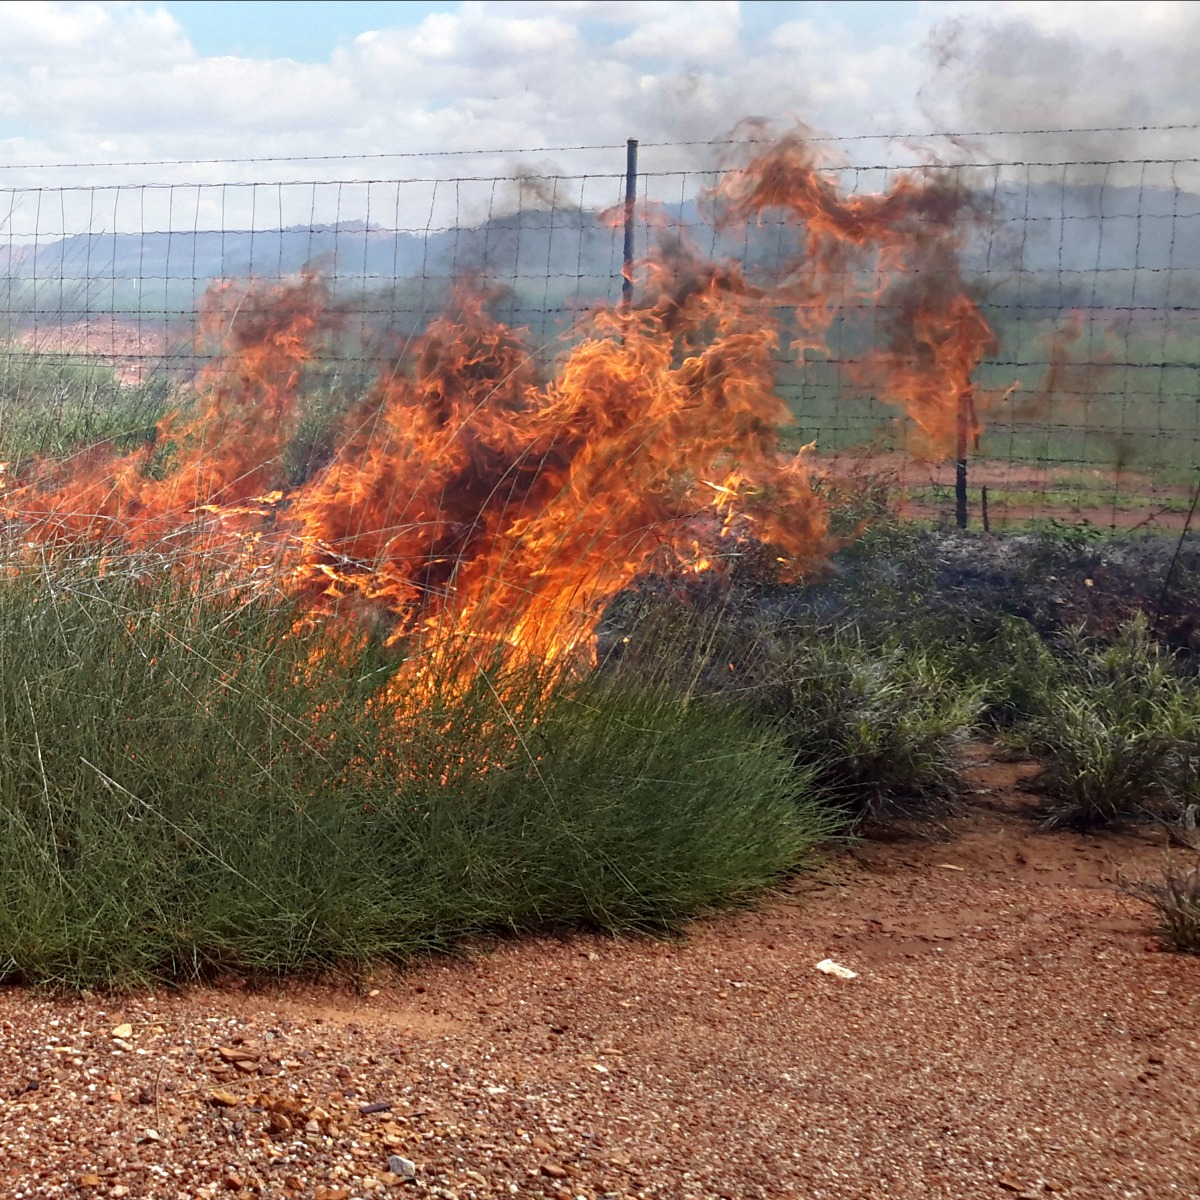 Spinifex burning 7 hours after rain